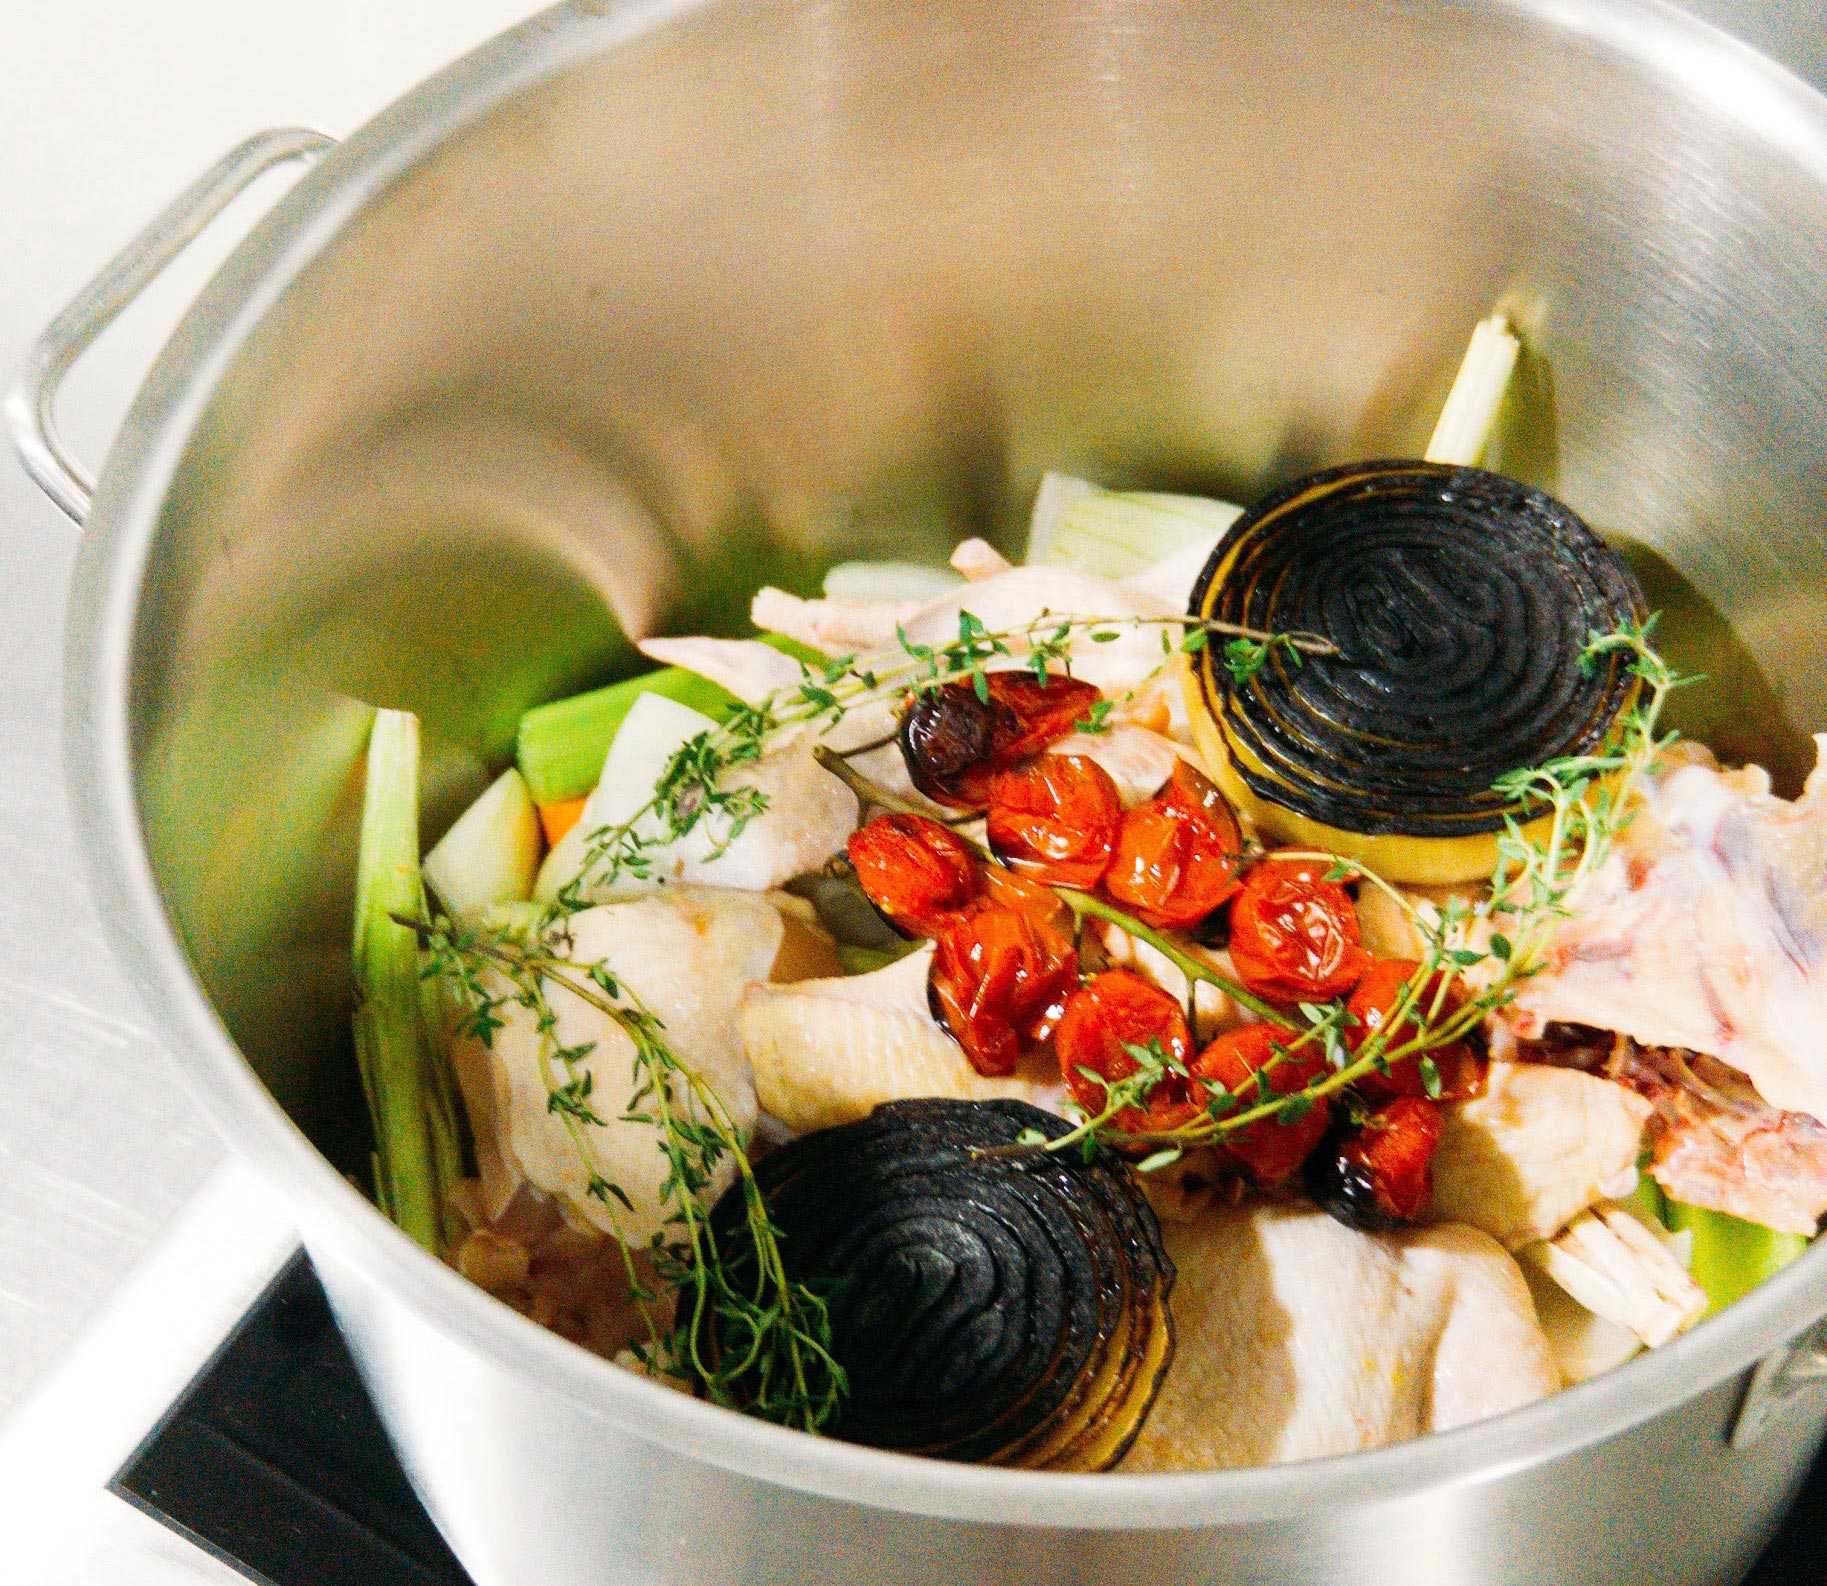 Charles Tan's tom yum chicken consommé is one of the eight dishes featured in the Lexus Culinary Perspectives cookbook